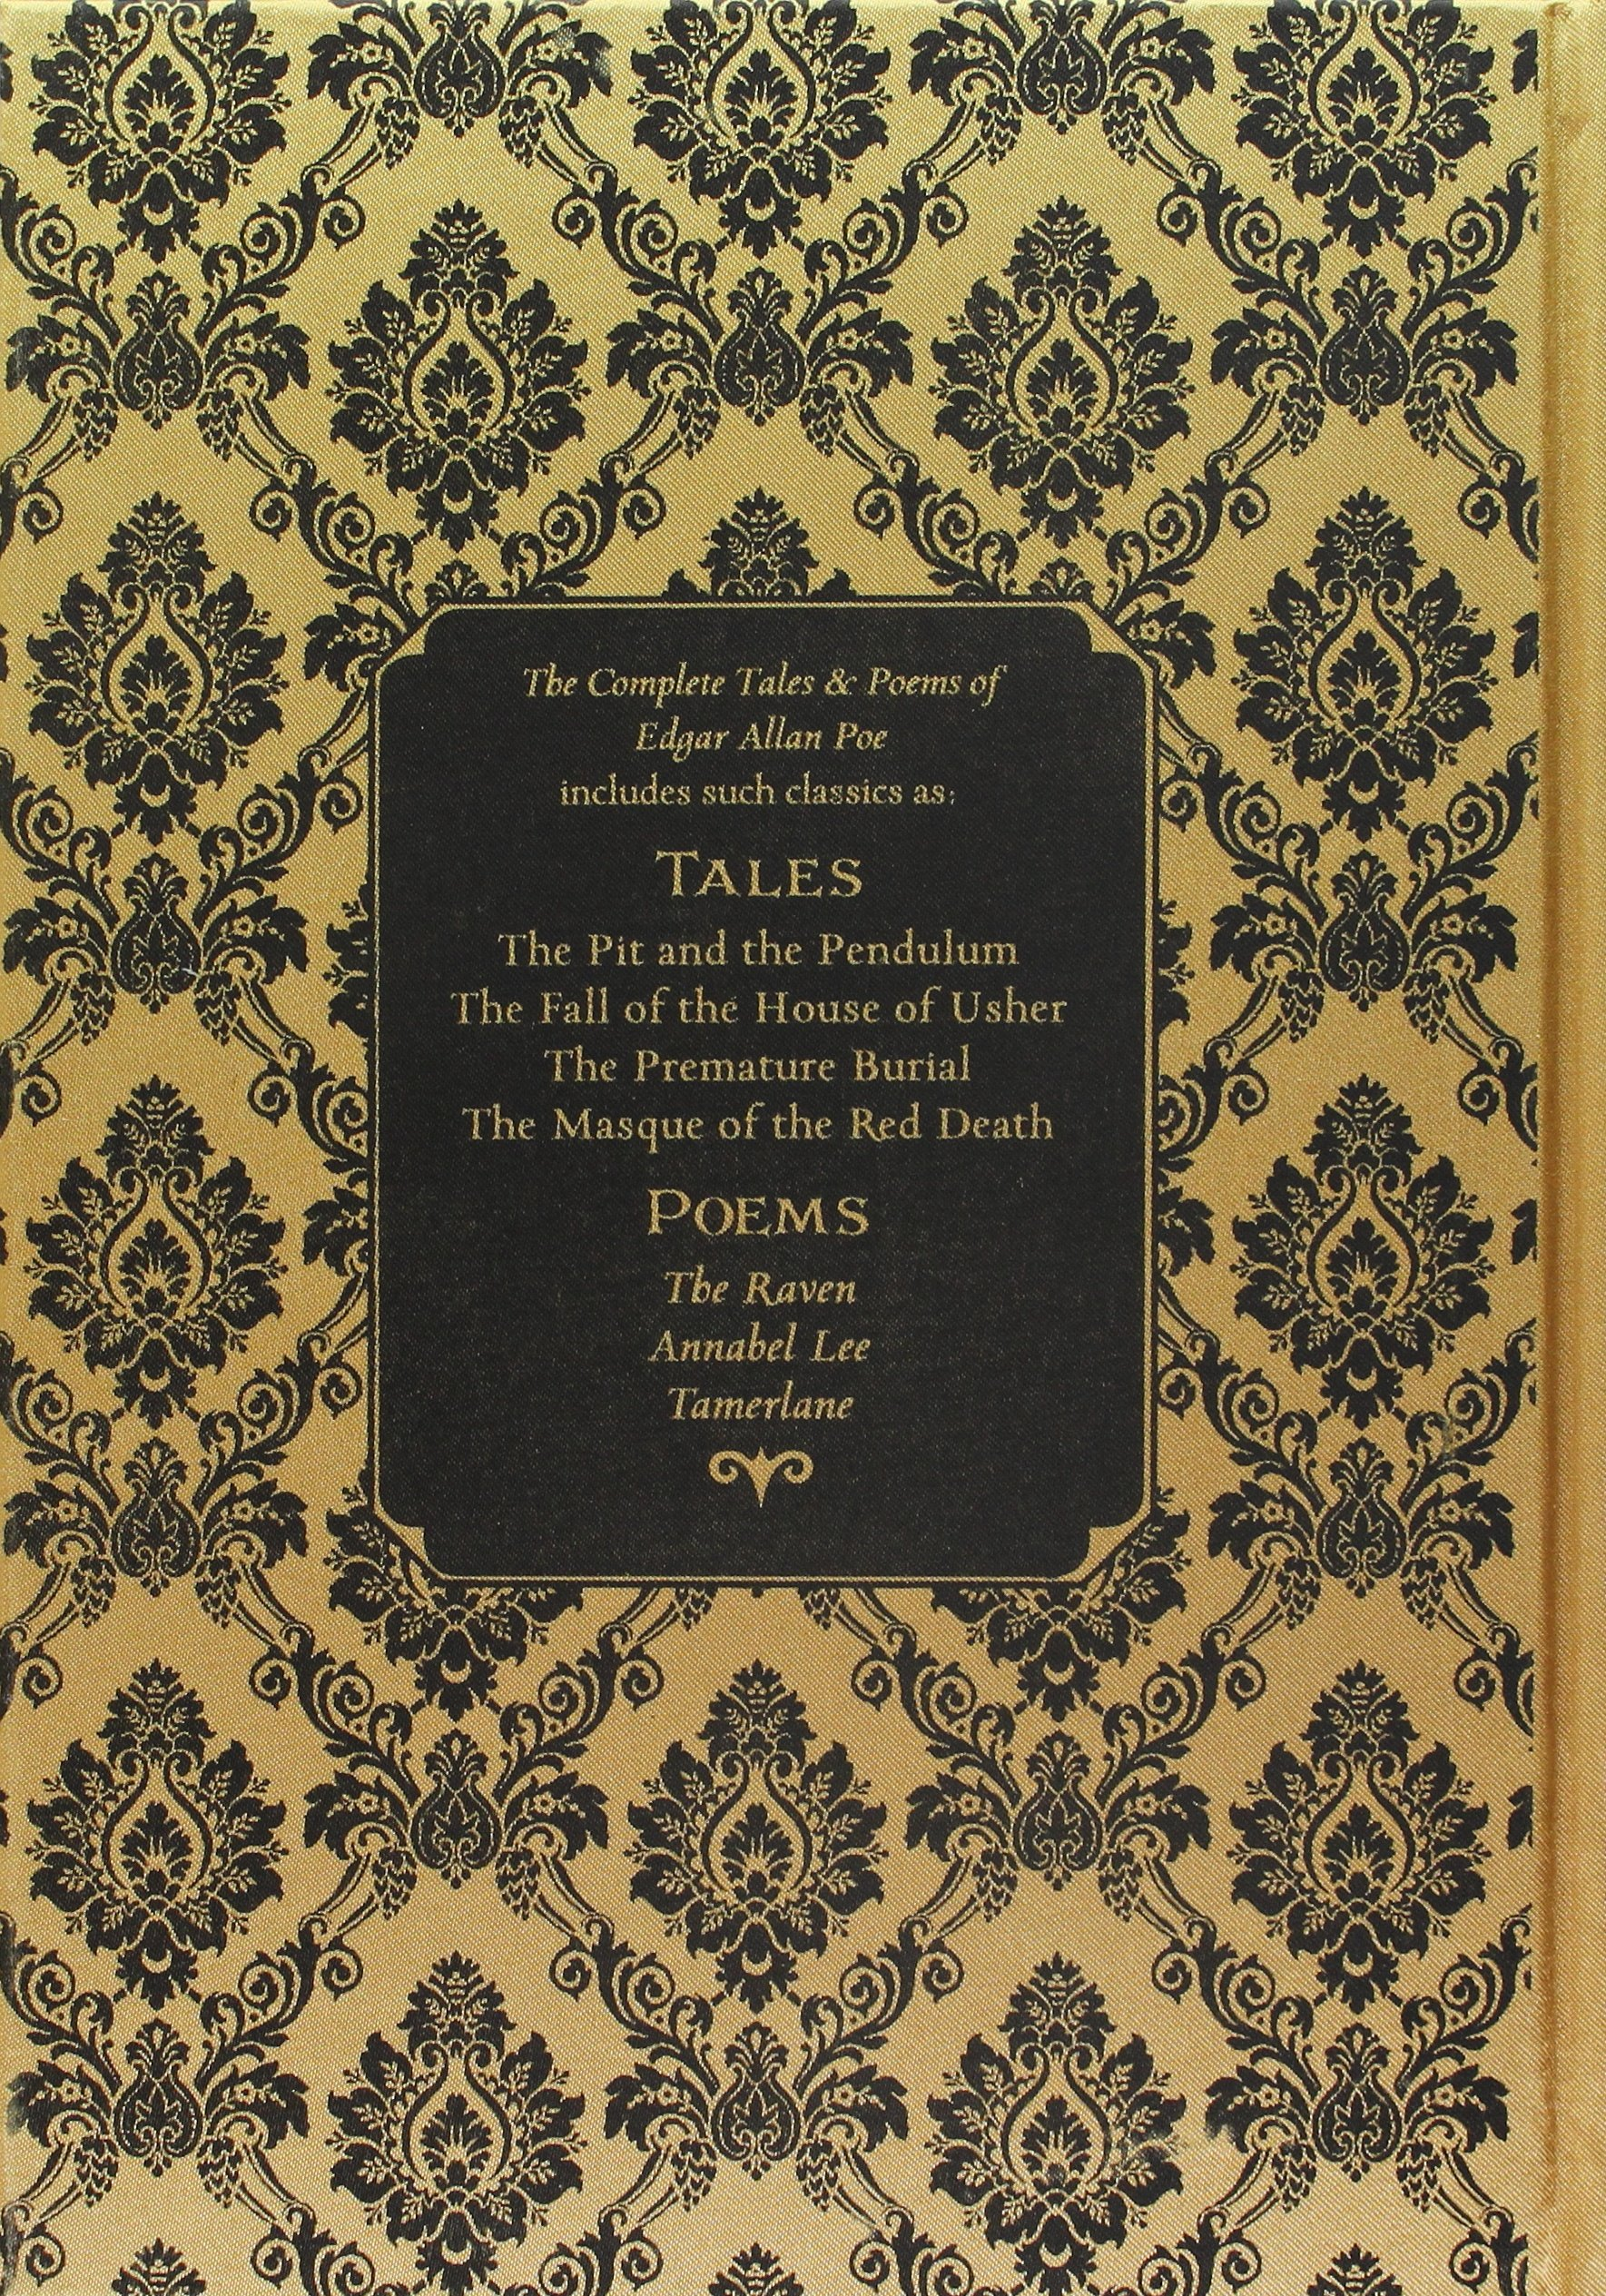 the complete tales poems of edgar allan poe amazon co uk edgar the complete tales poems of edgar allan poe amazon co uk edgar allan poe 9781937994433 books